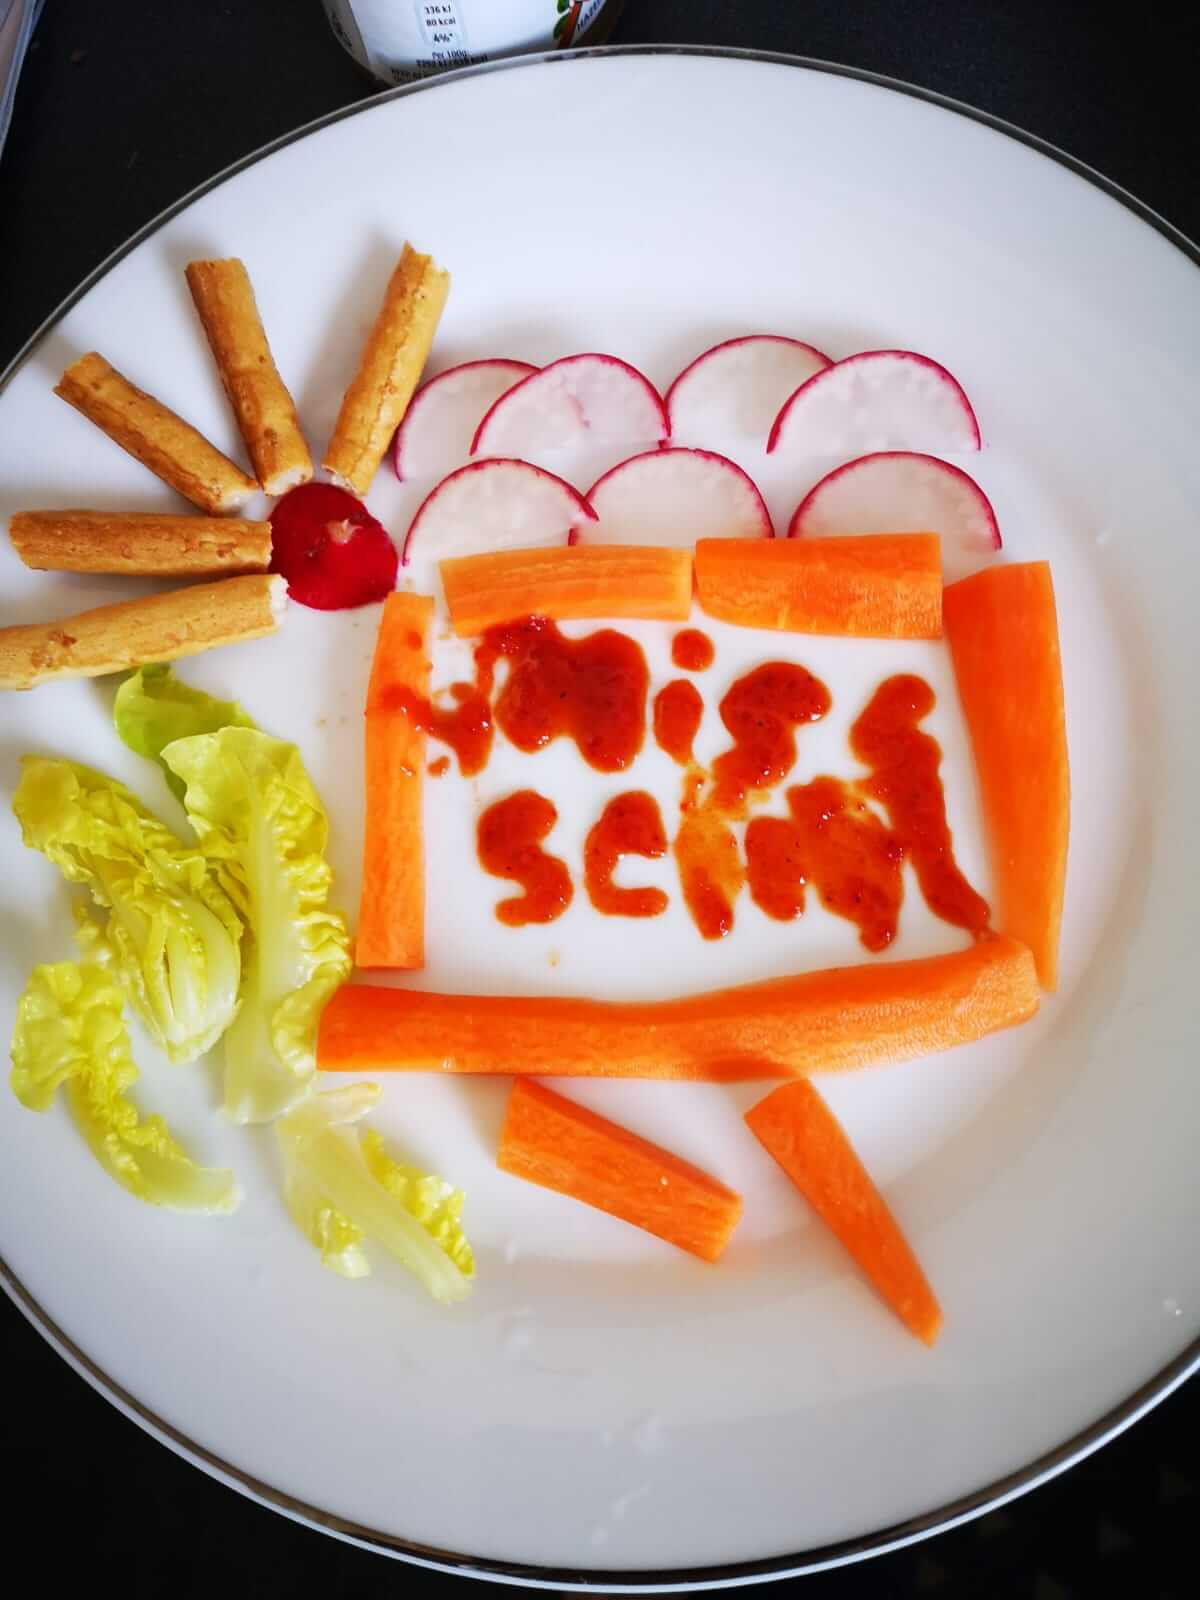 Two boys enjoy being creative with food during lockdown in Wales